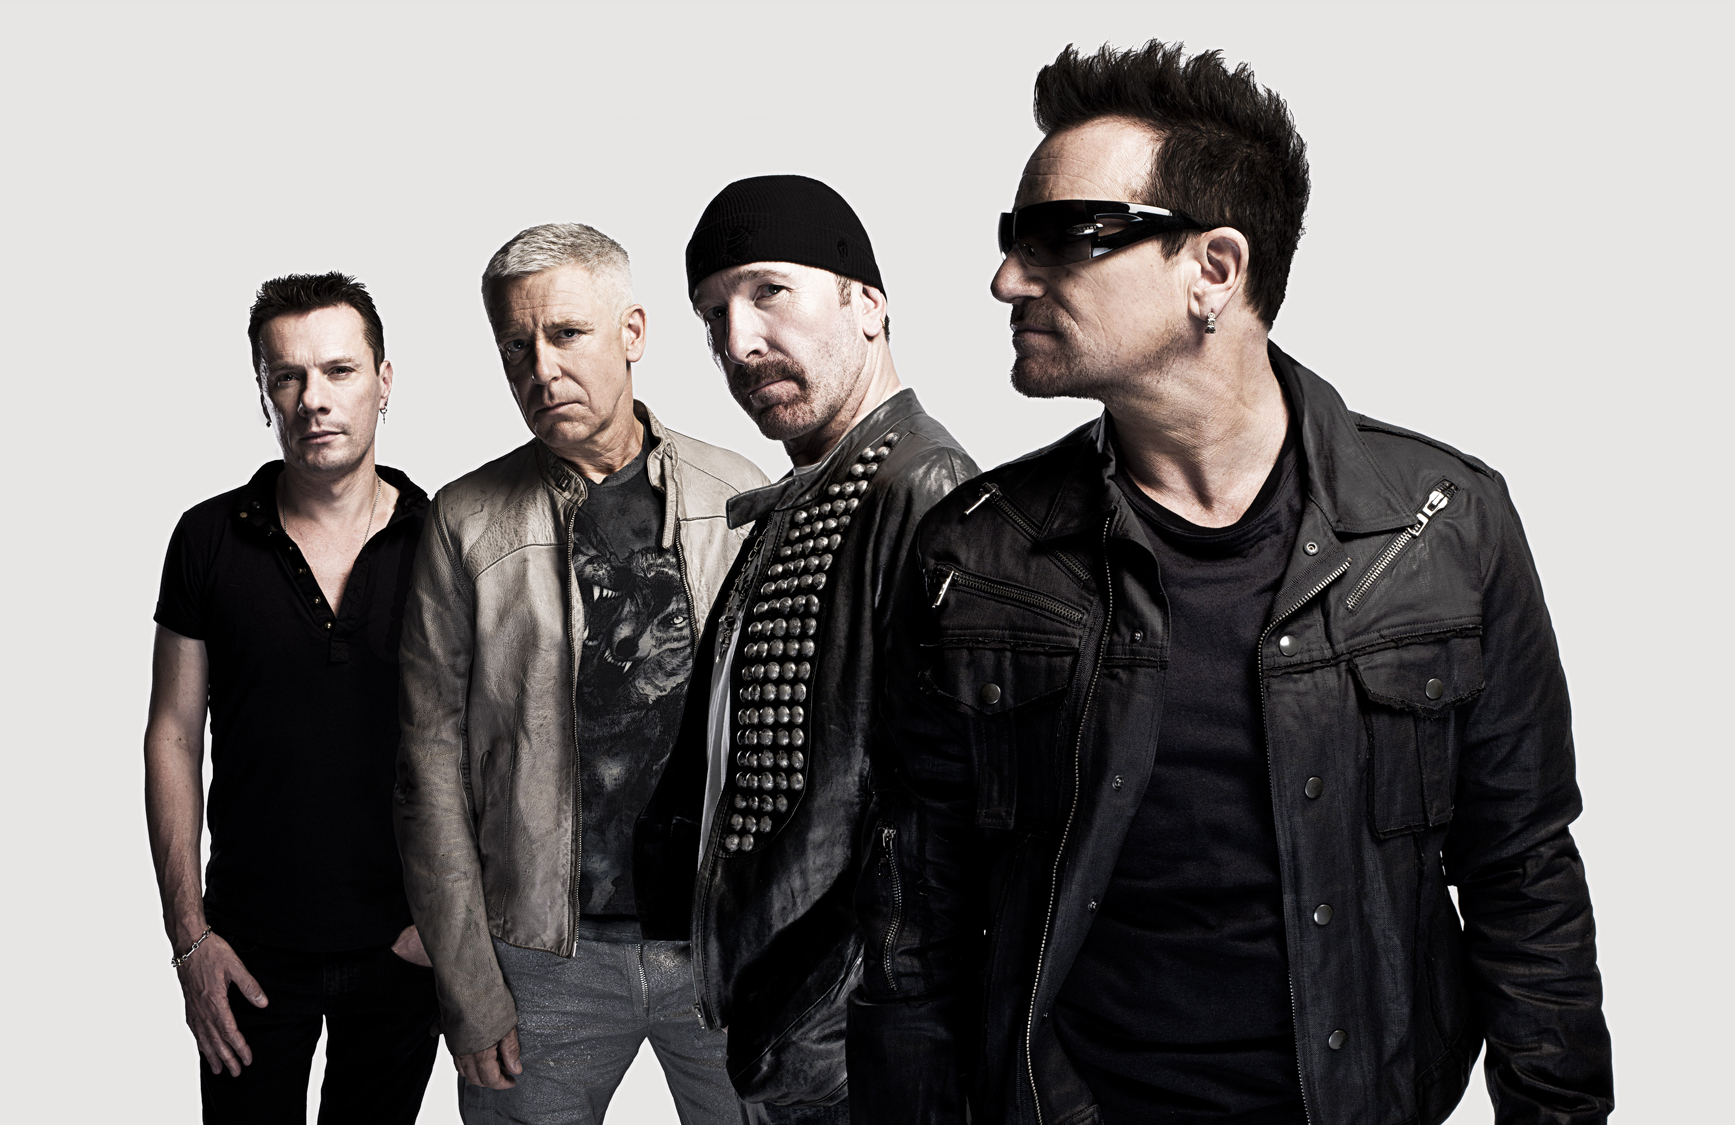 U2 release limited number of <em>Songs of Innocence</em> vinyl to secure Grammy eligibility